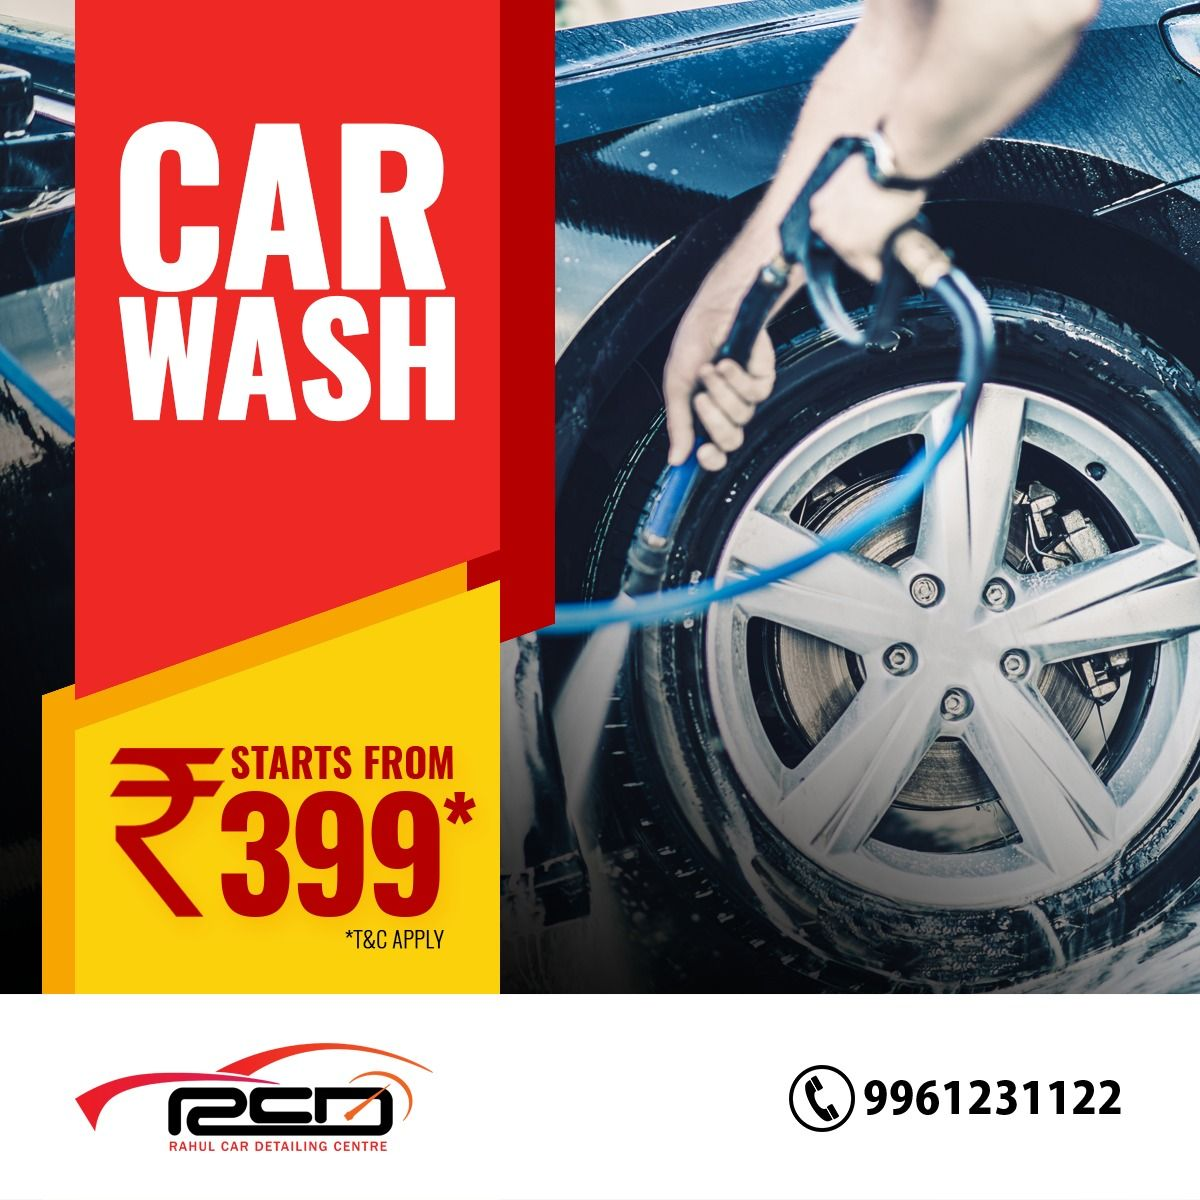 Car Detailing Centre In Trivandrum Car Detailing Car Wash Interior Car Wash